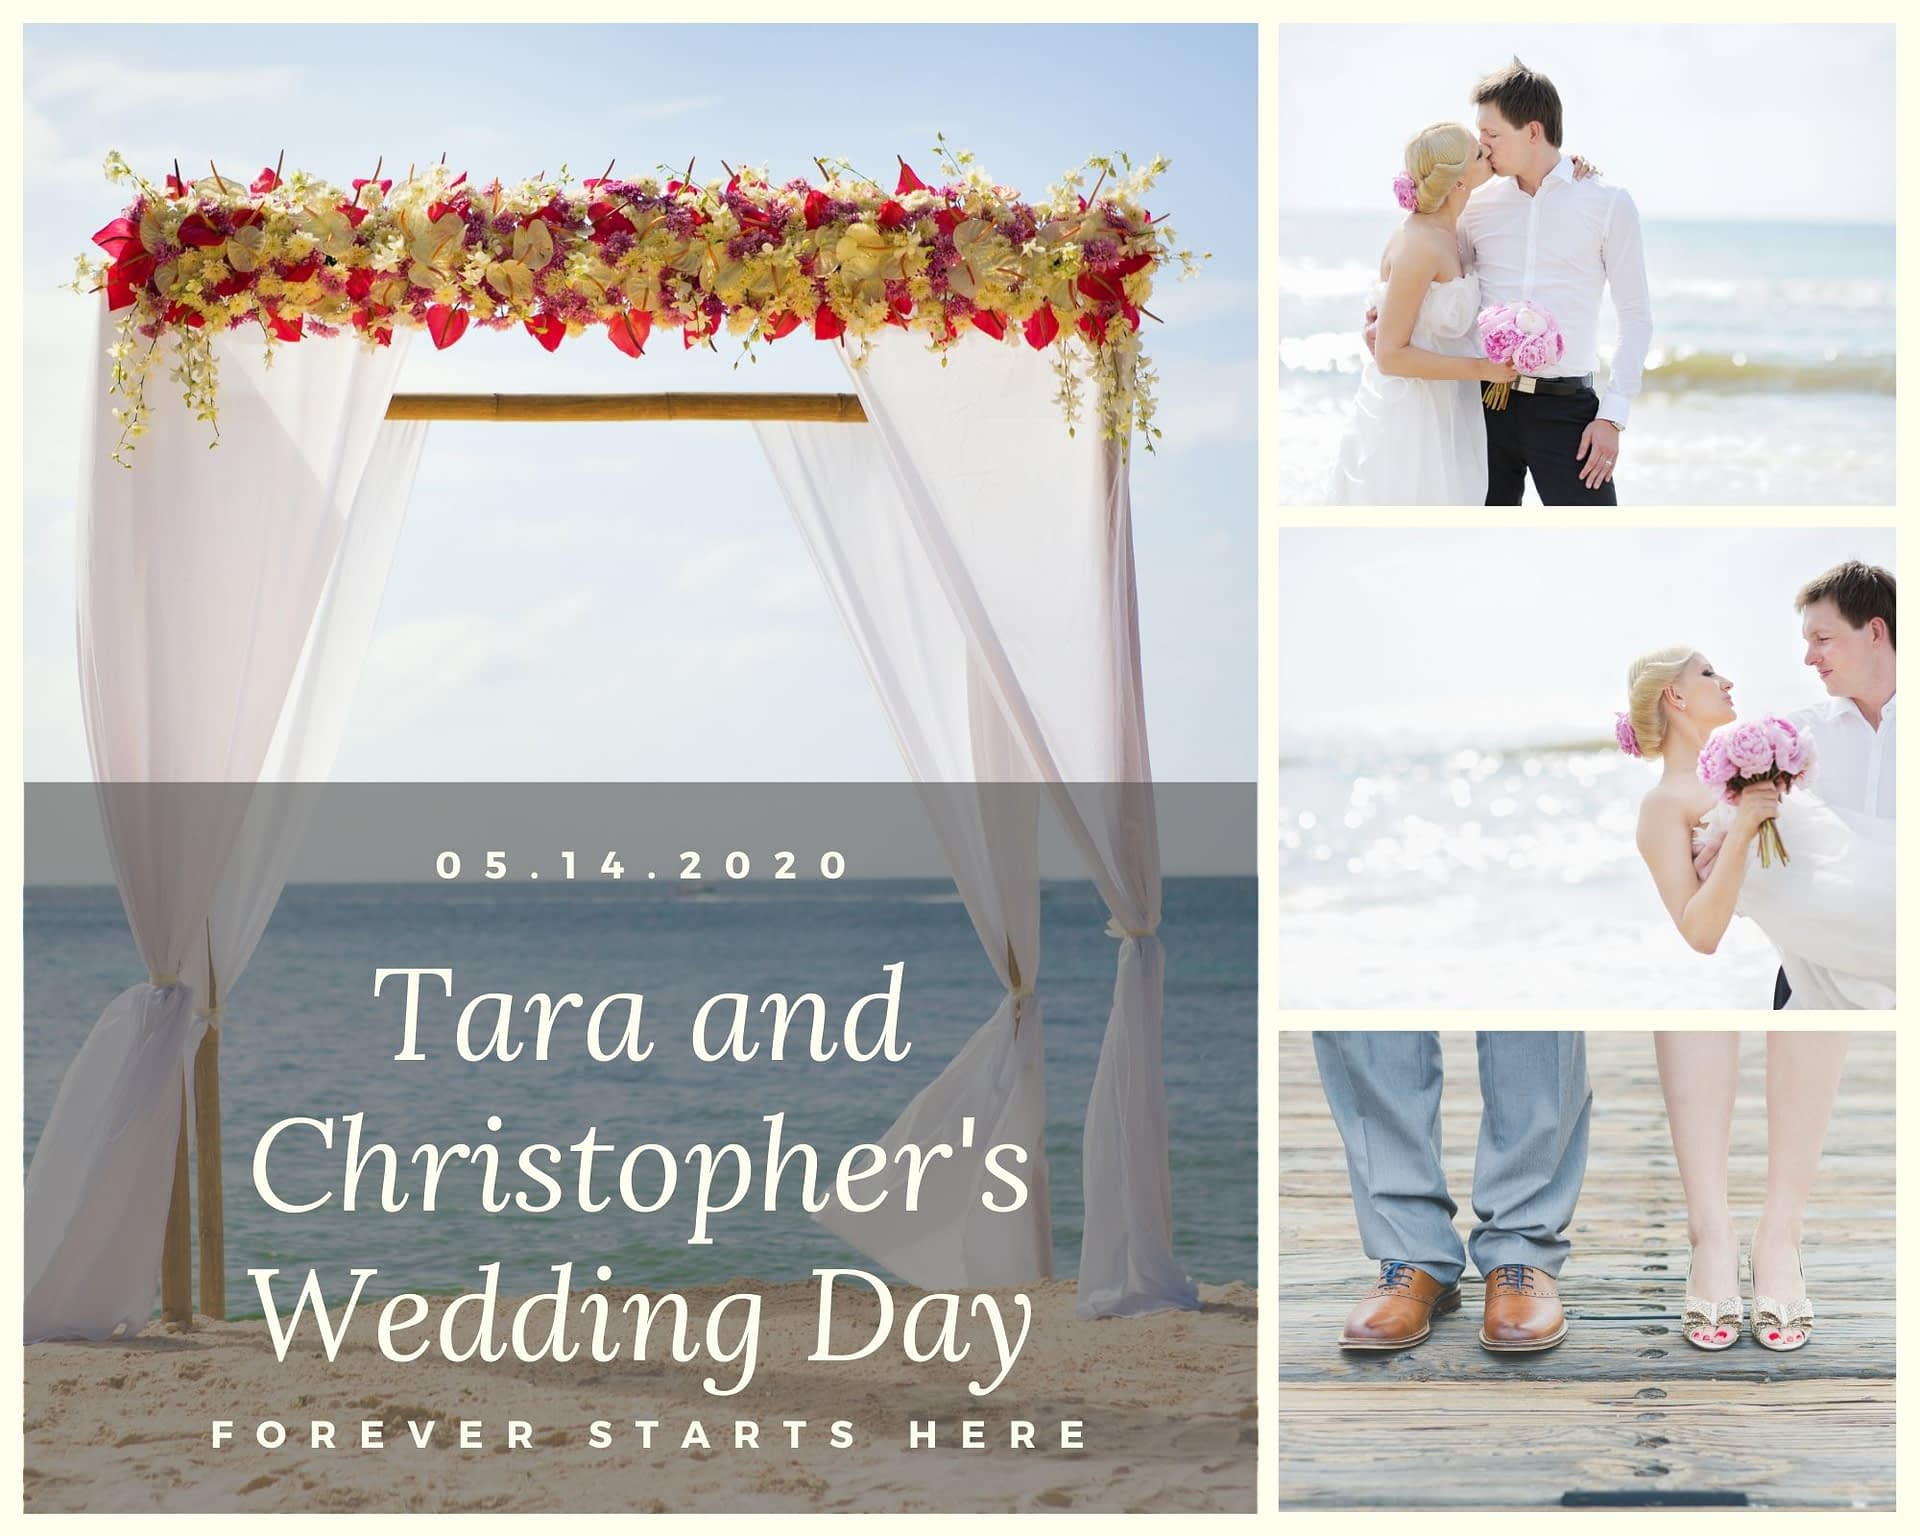 Wedding Photo Collages from Canva